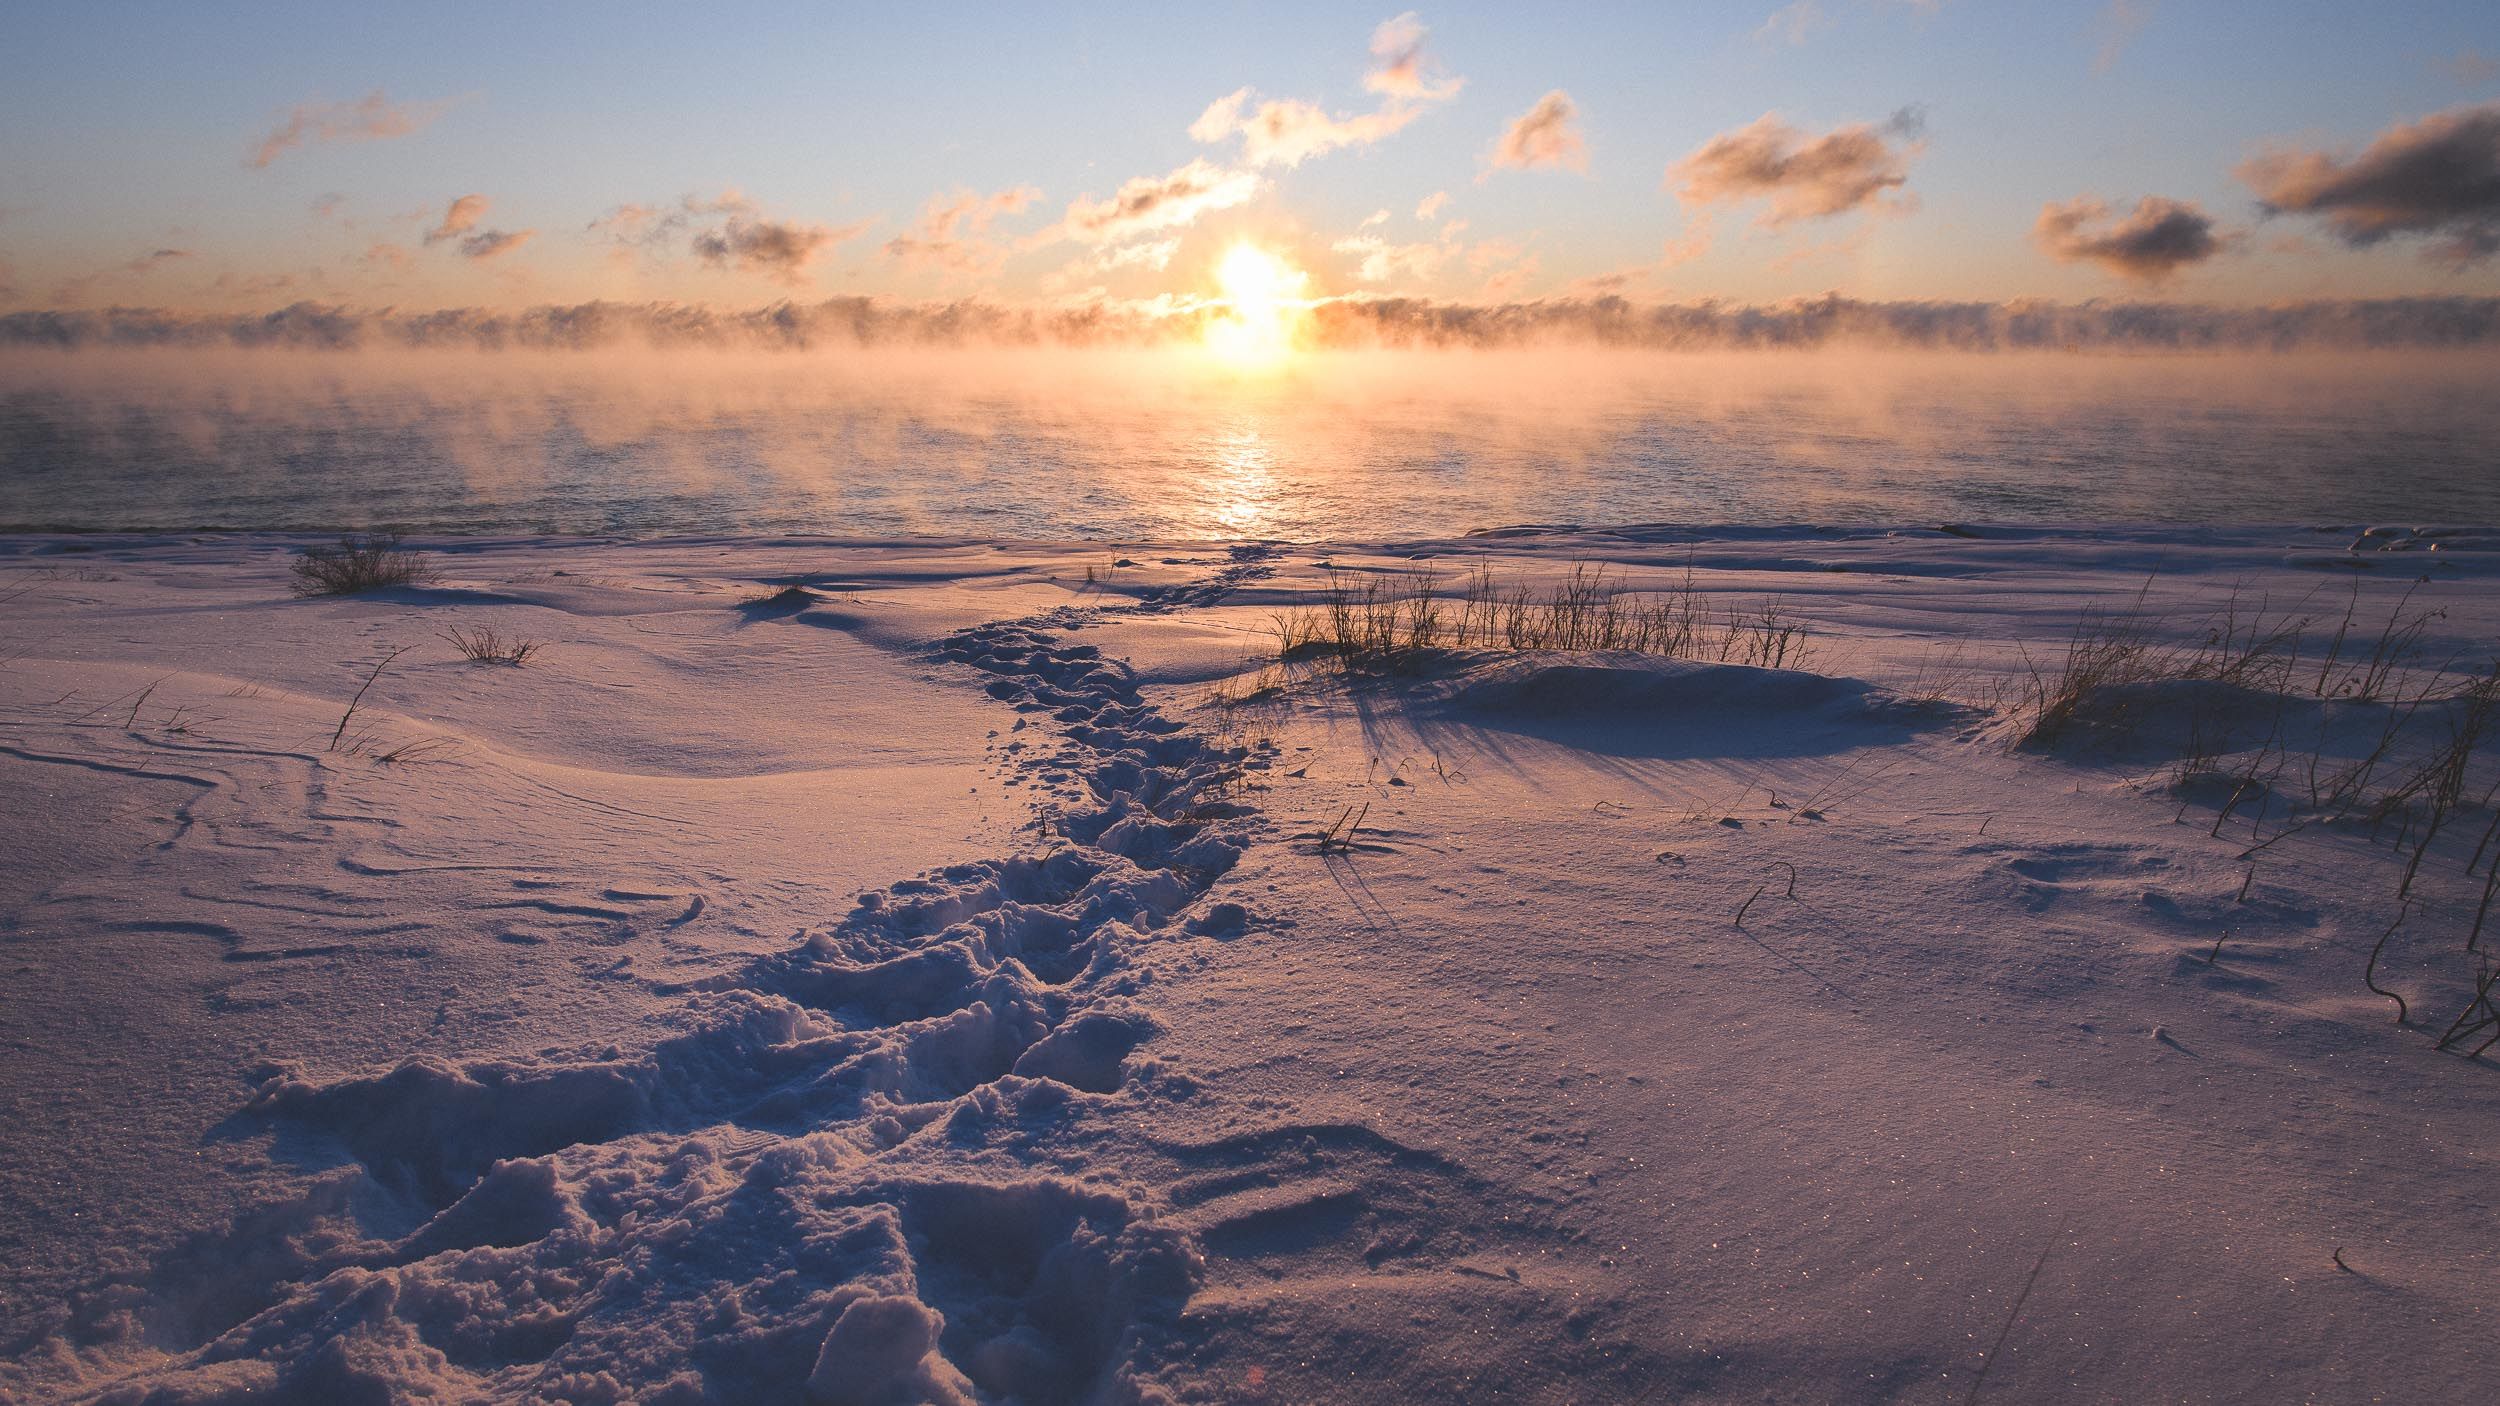 Footsteps lead to water's edge on Lake Superior for a sunrise at Gooseberry Falls State Park on Lake Superior in Minnesota.